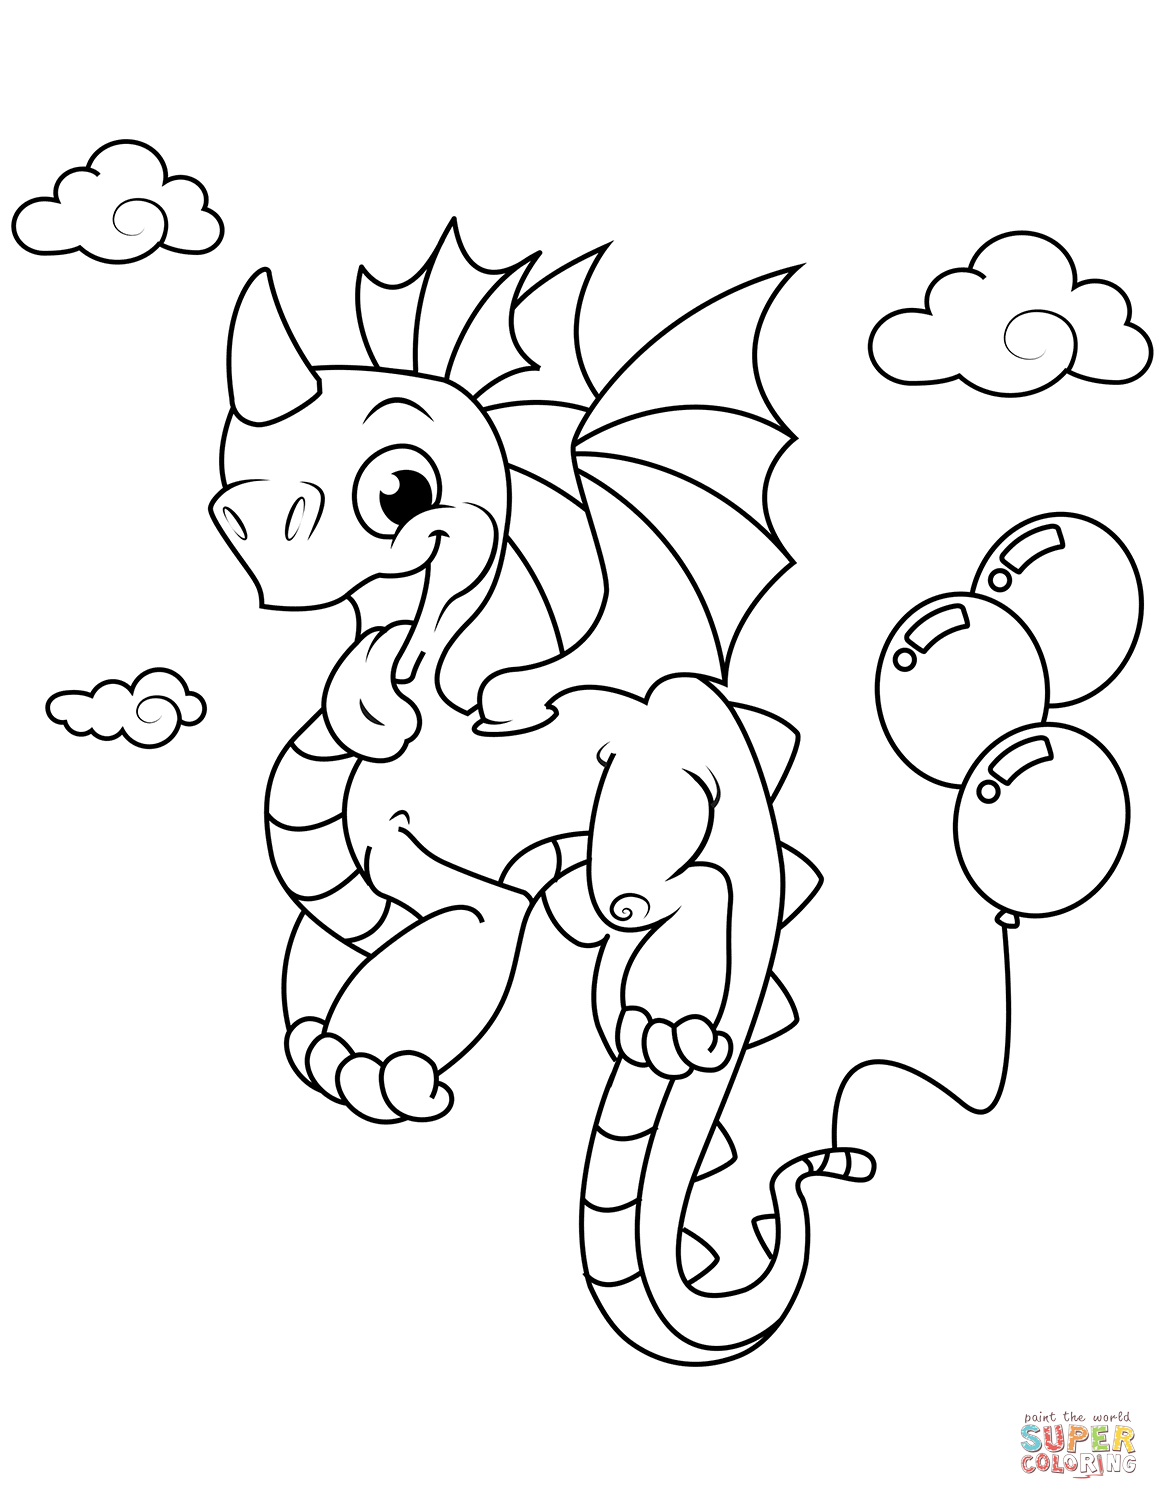 dragon coloring pages free how to draw a death dragon step by step dragons draw a pages free dragon coloring